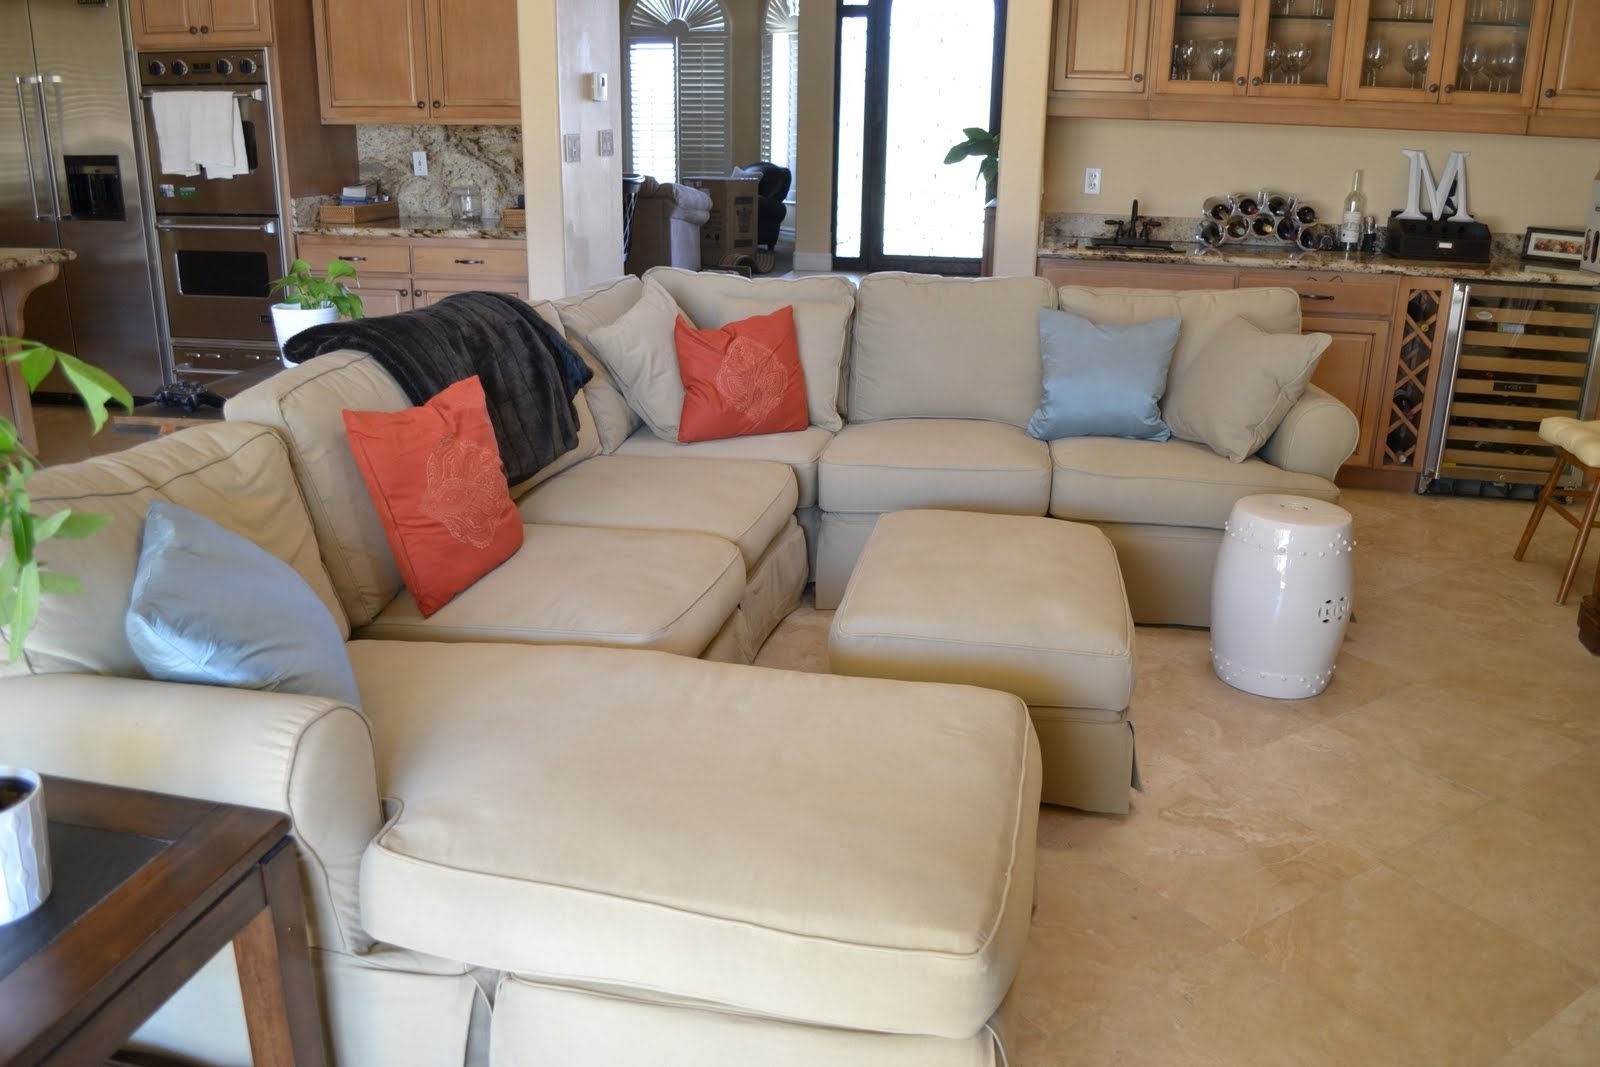 Widely Used Jcpenney Sectional Sofas For 3 Piece Sectional Slipcovers — Cabinets, Beds, Sofas And (View 19 of 20)